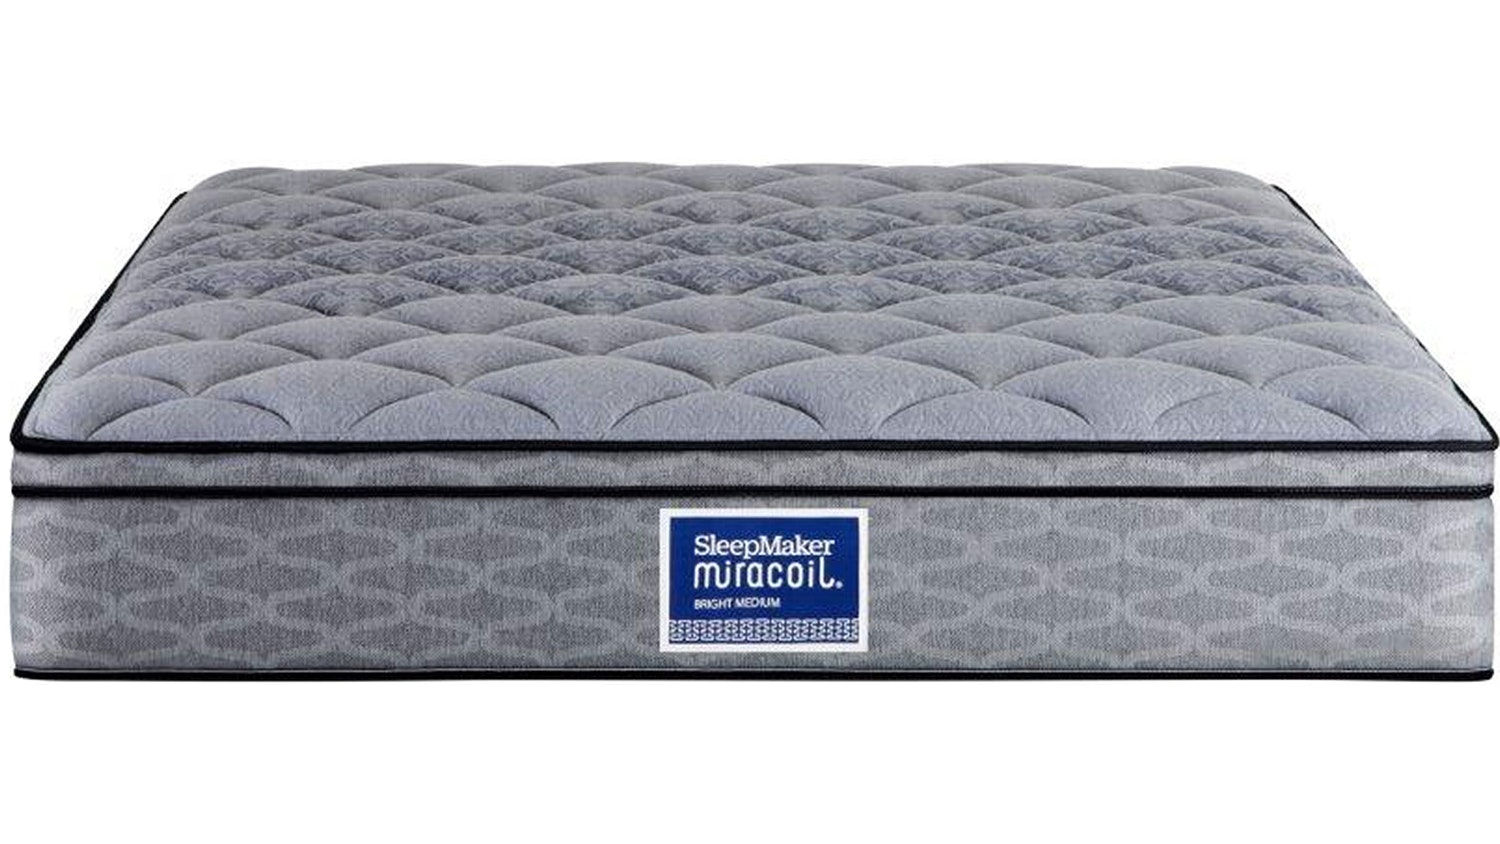 Sleepmaker Miracoil Bright Medium Mattress